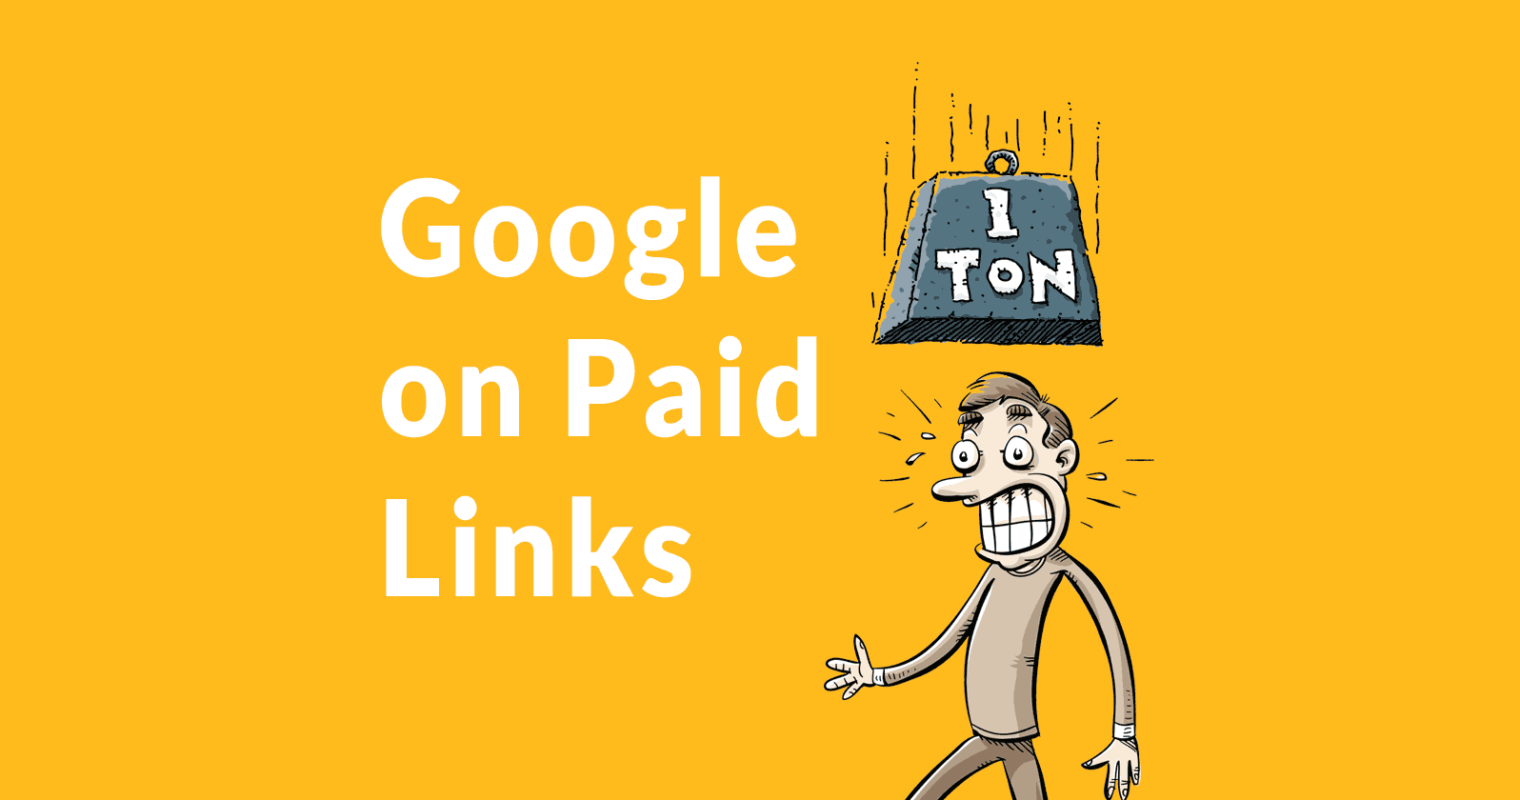 Did Googler's Tweet Imply Google Doesn't Catch All Paid Links?